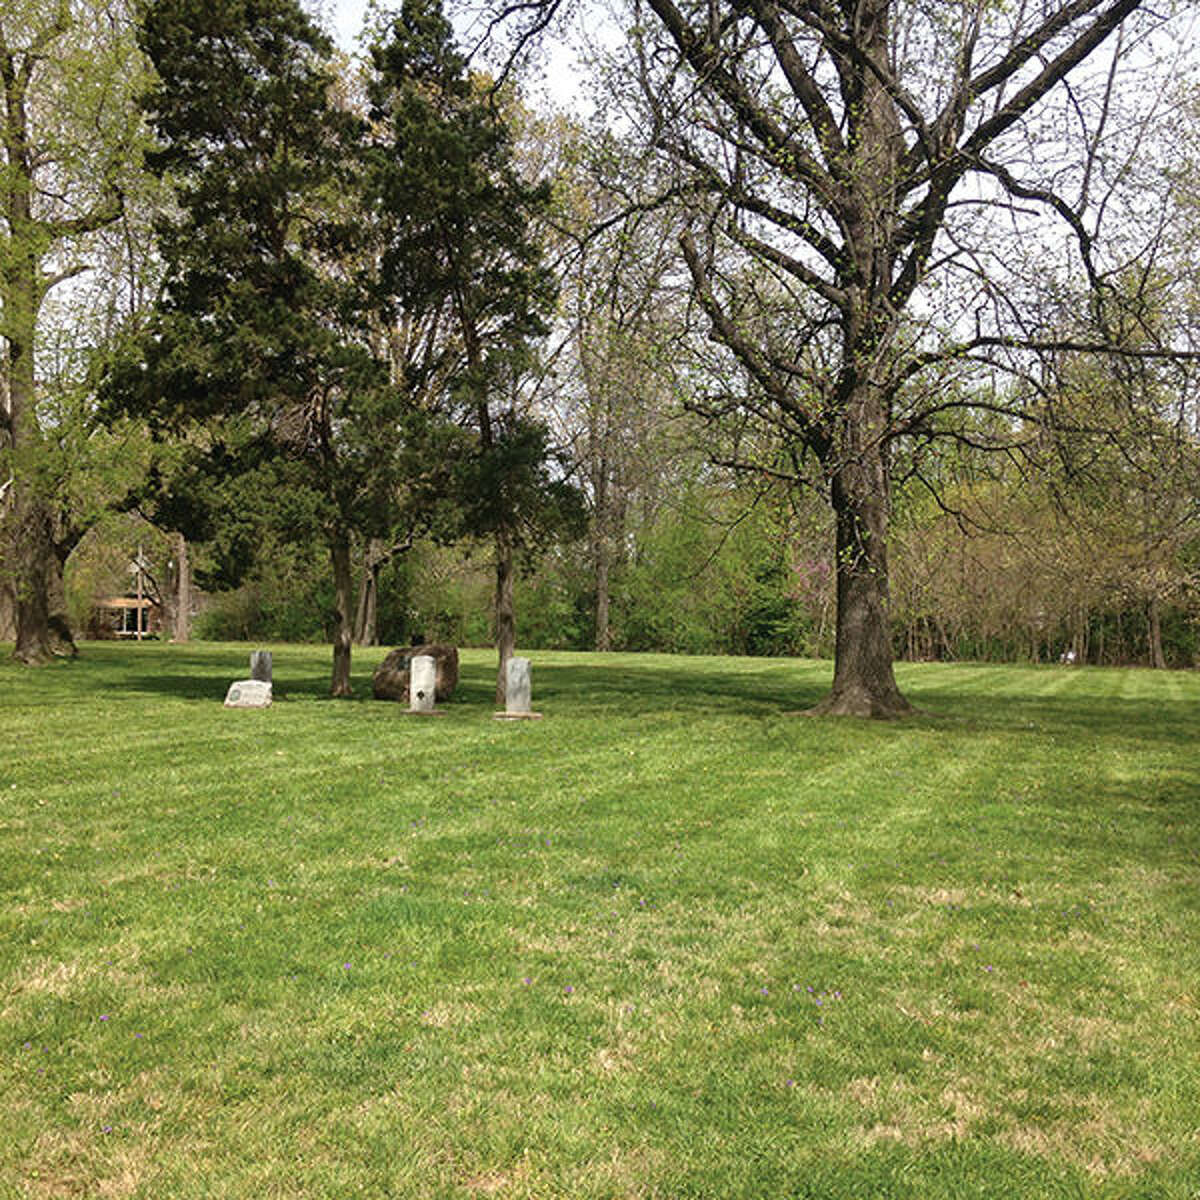 Lusk Park, also known as Lusk Family Cemetery, is being discussed as a possible site to move the Ninian Edwards statue.